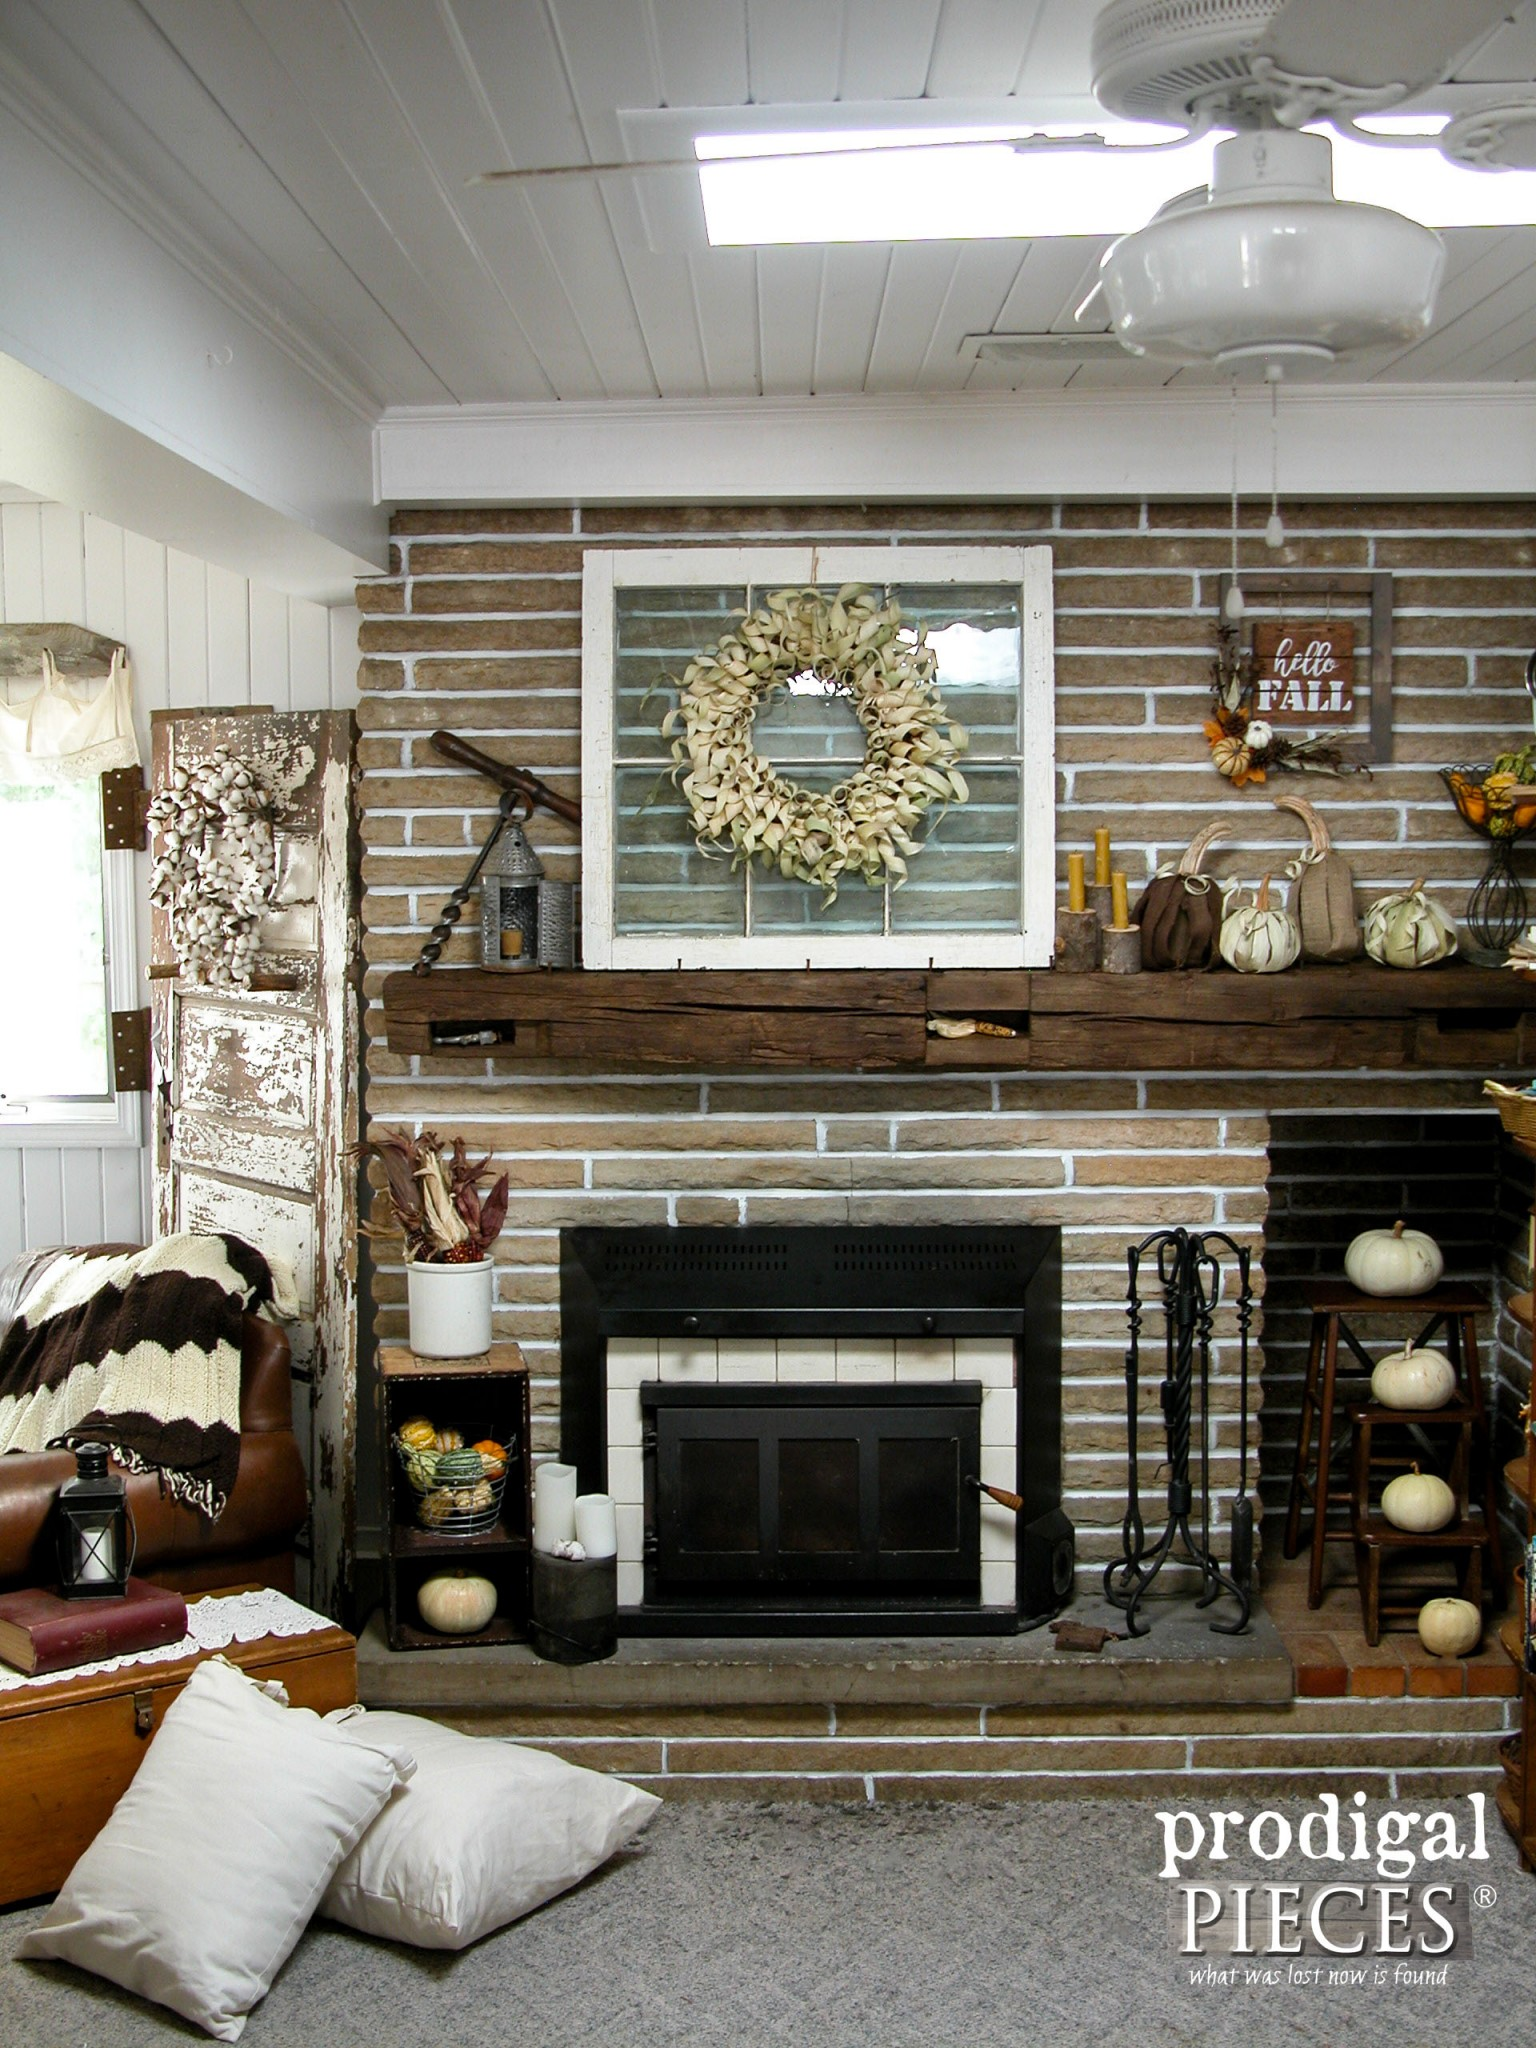 Farmhouse Style Fall Fireplace Mantel Decor by Prodigal Pieces | www.prodigalpieces.com